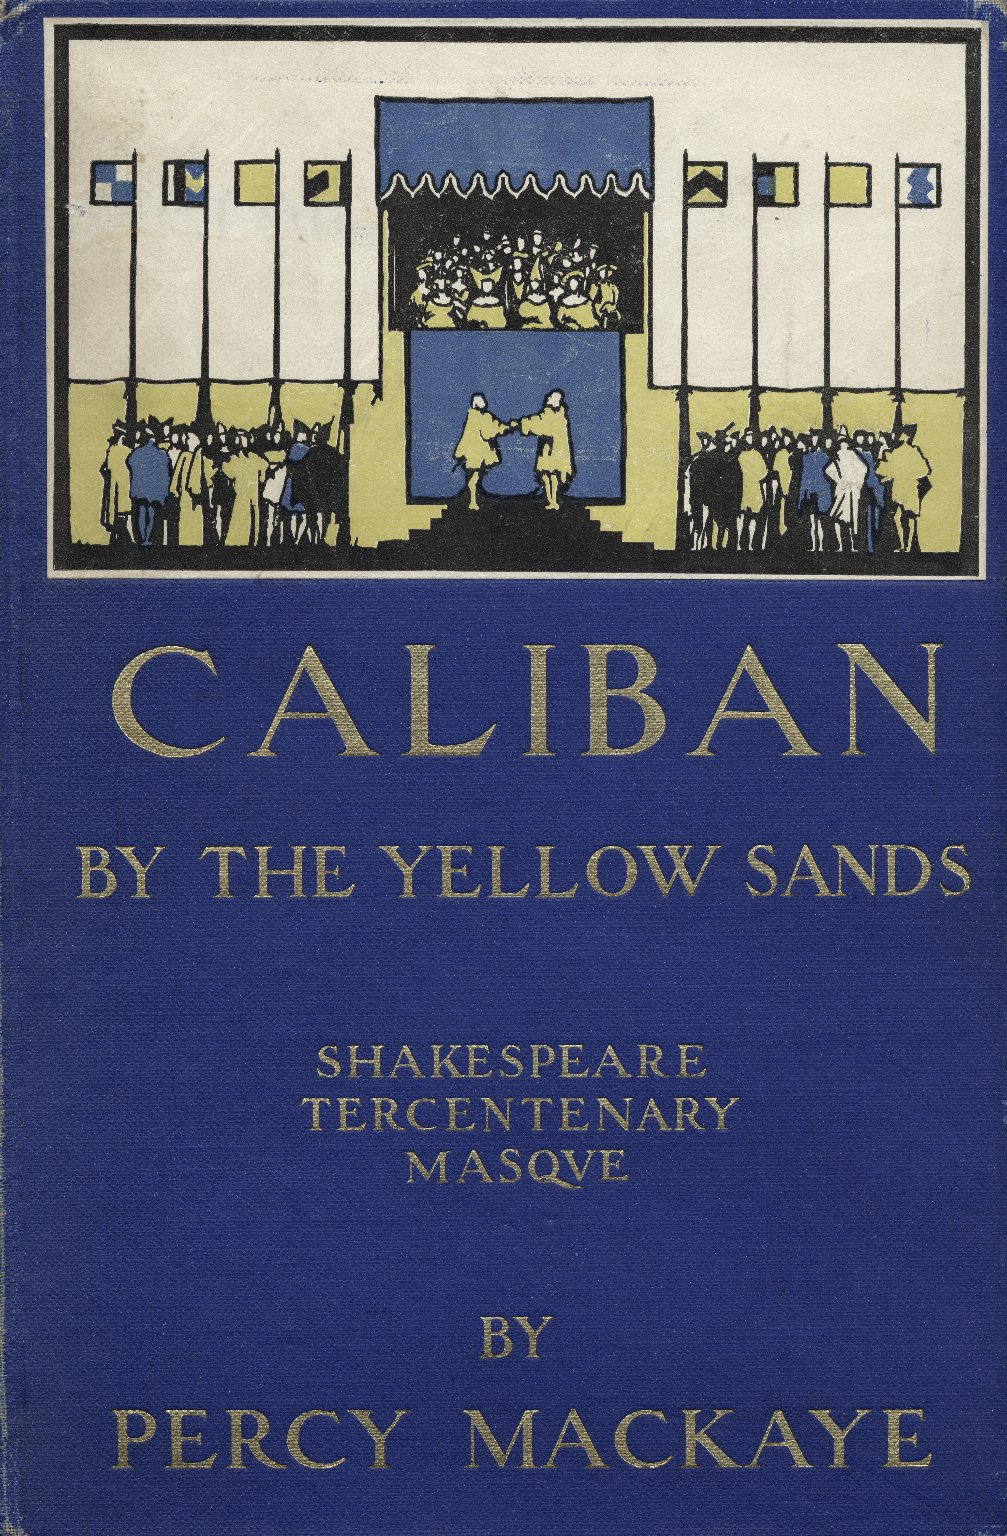 Caliban by the Yellow Sands. Percy MacKaye. 1916. Folger Shakespeare Library.